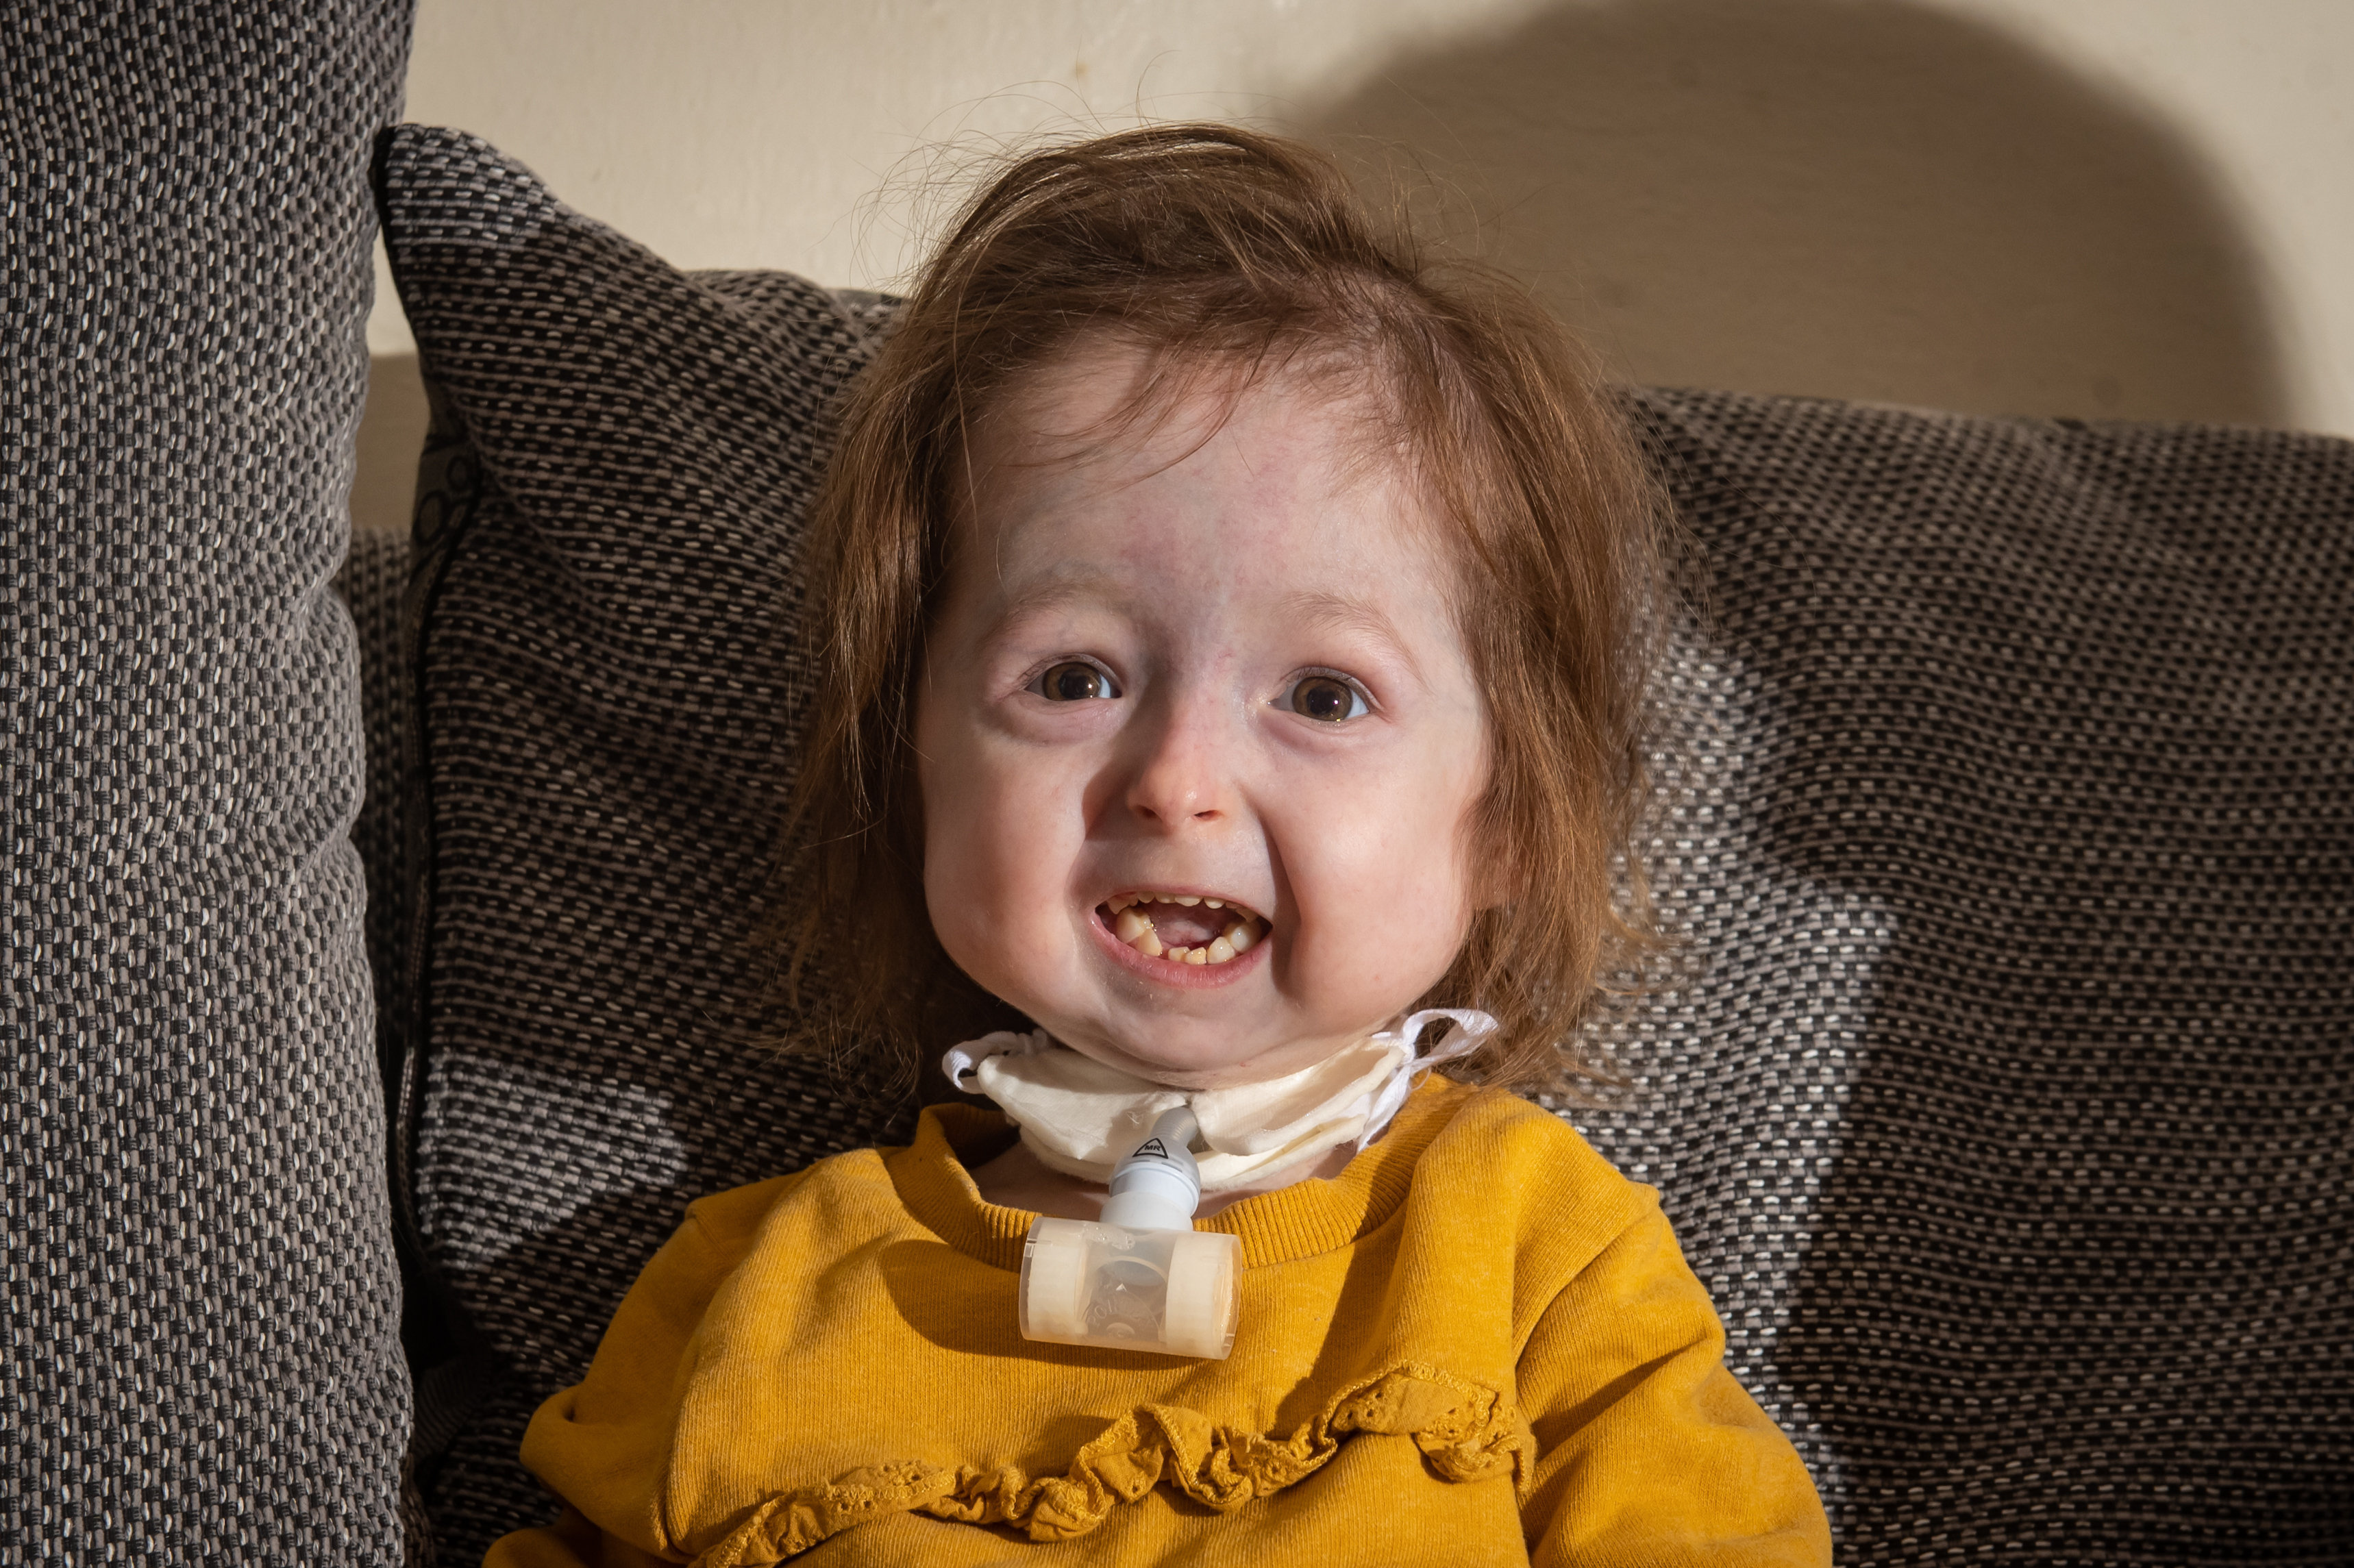 Girl, 2, with rare form of 'Benjamin Button disease' weighs just 15 pounds